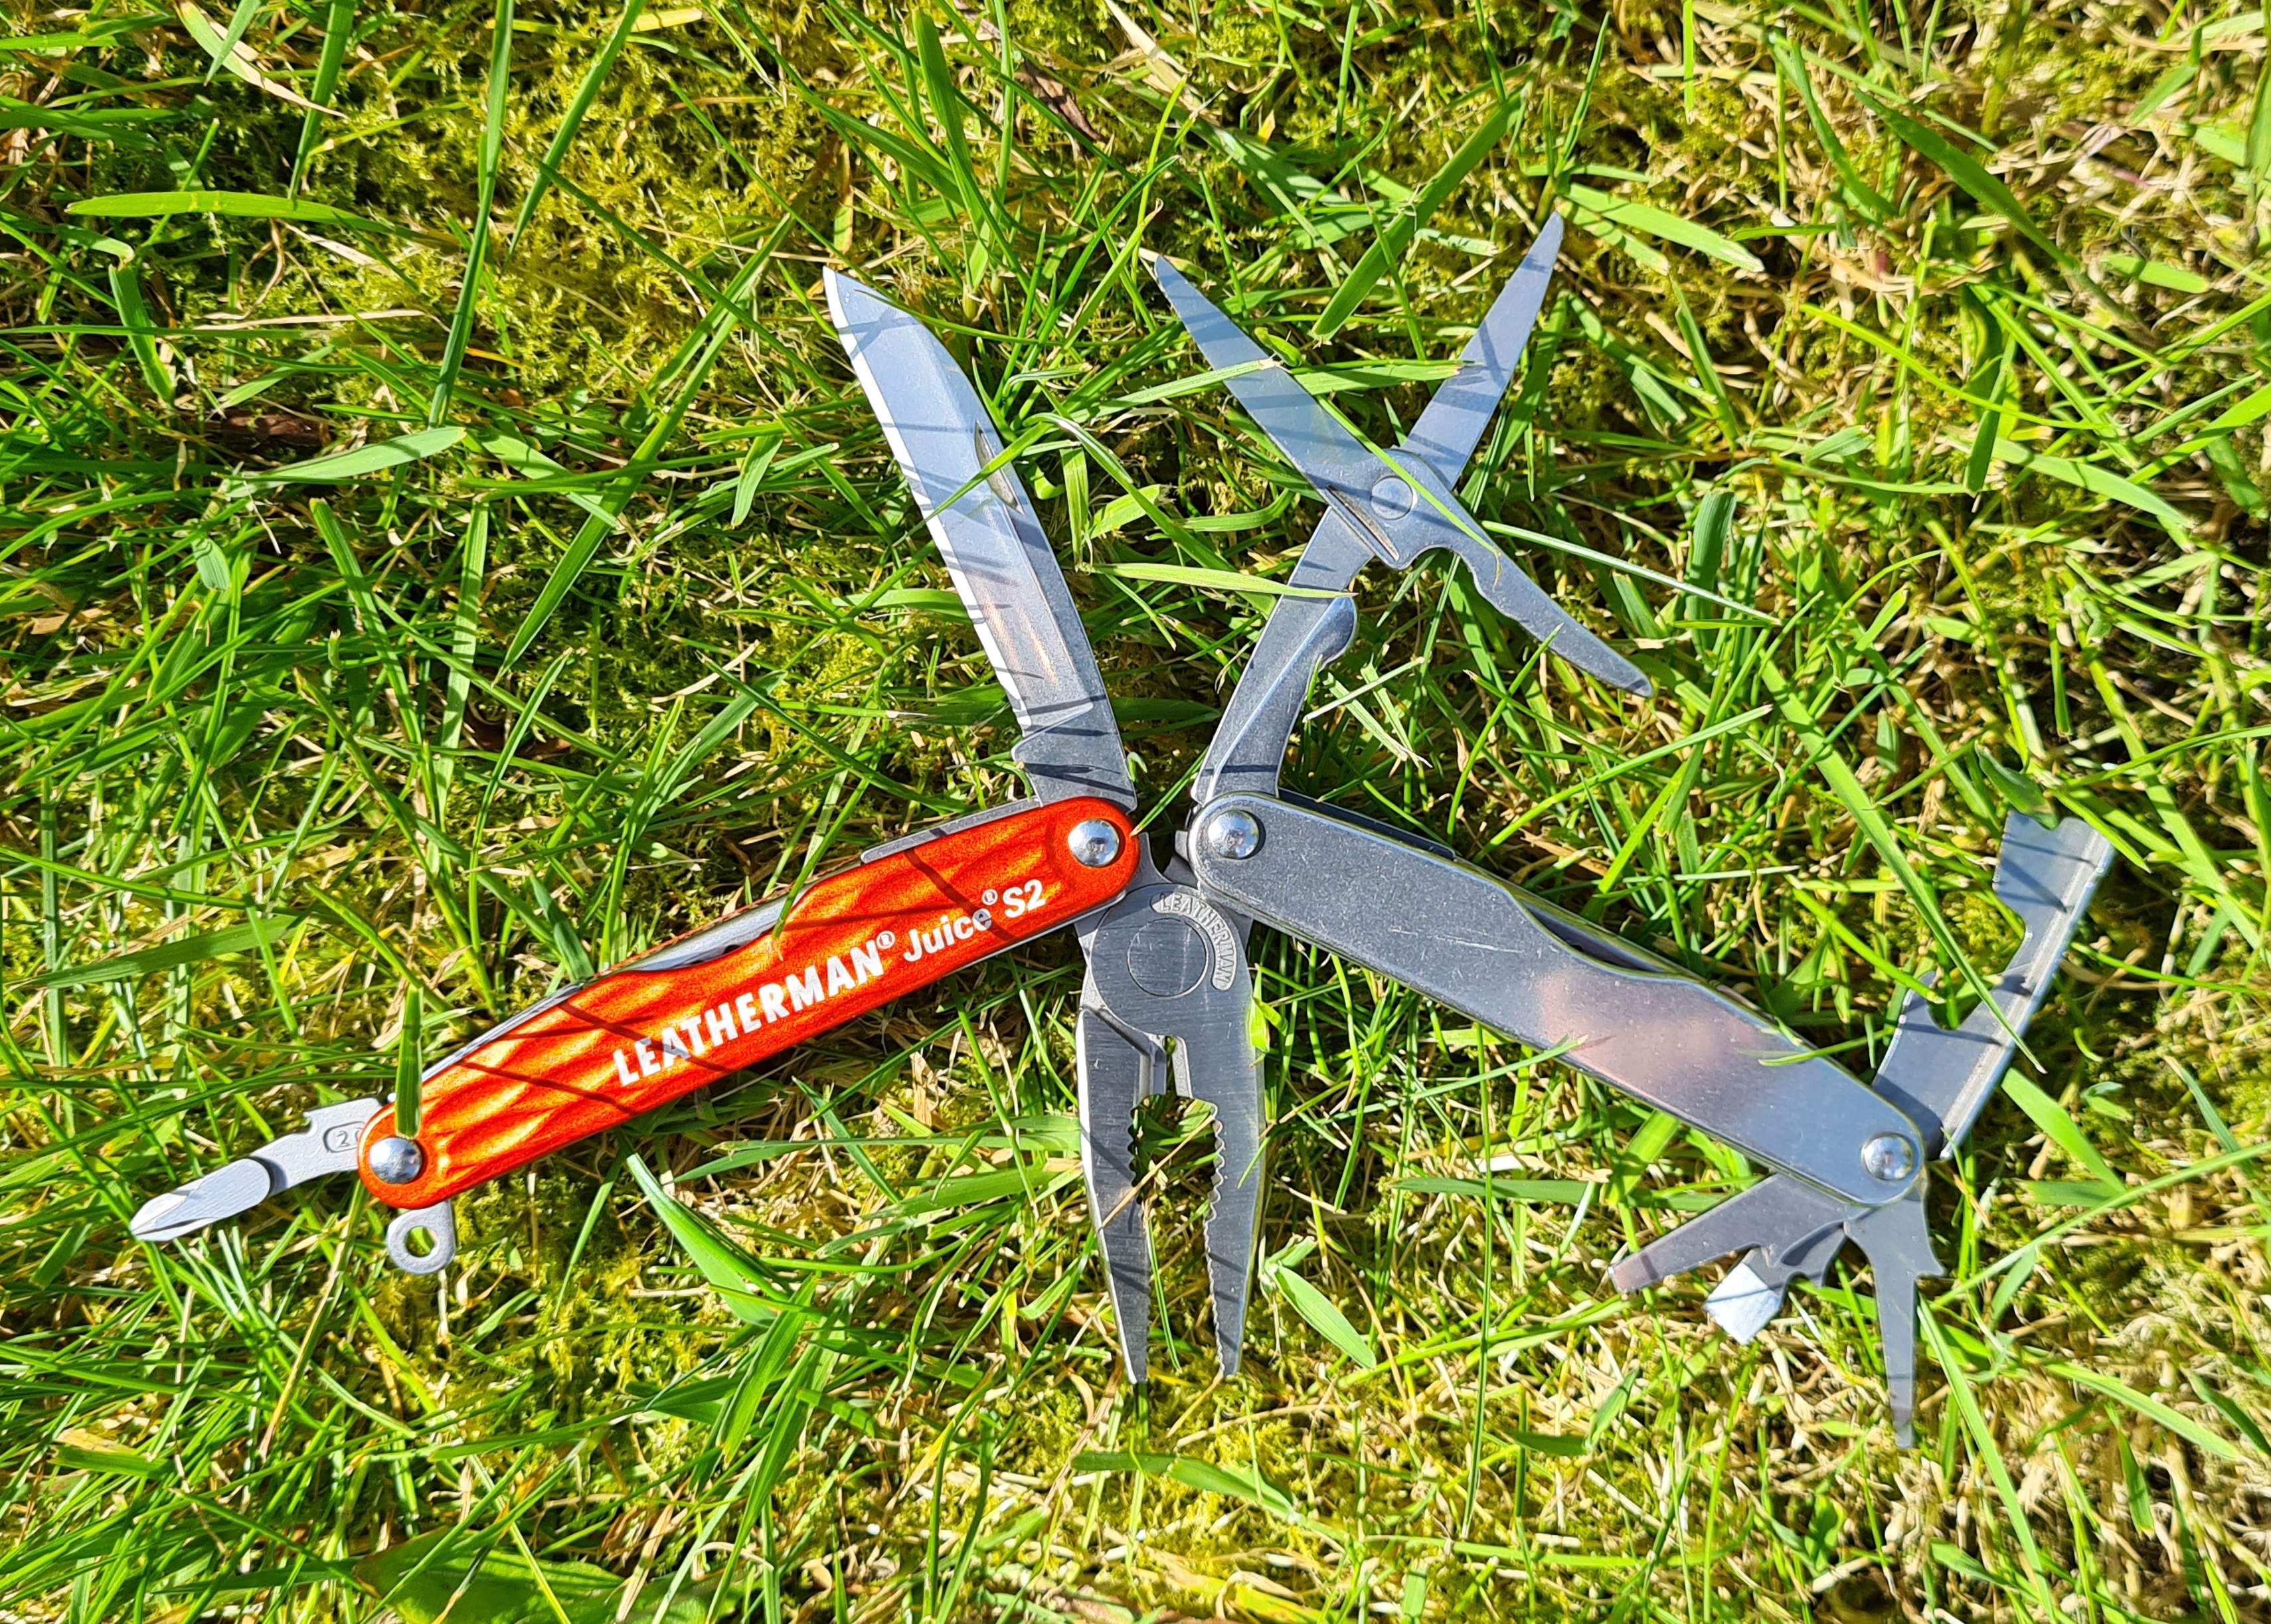 Leatherman Juice S2 with all tools opened